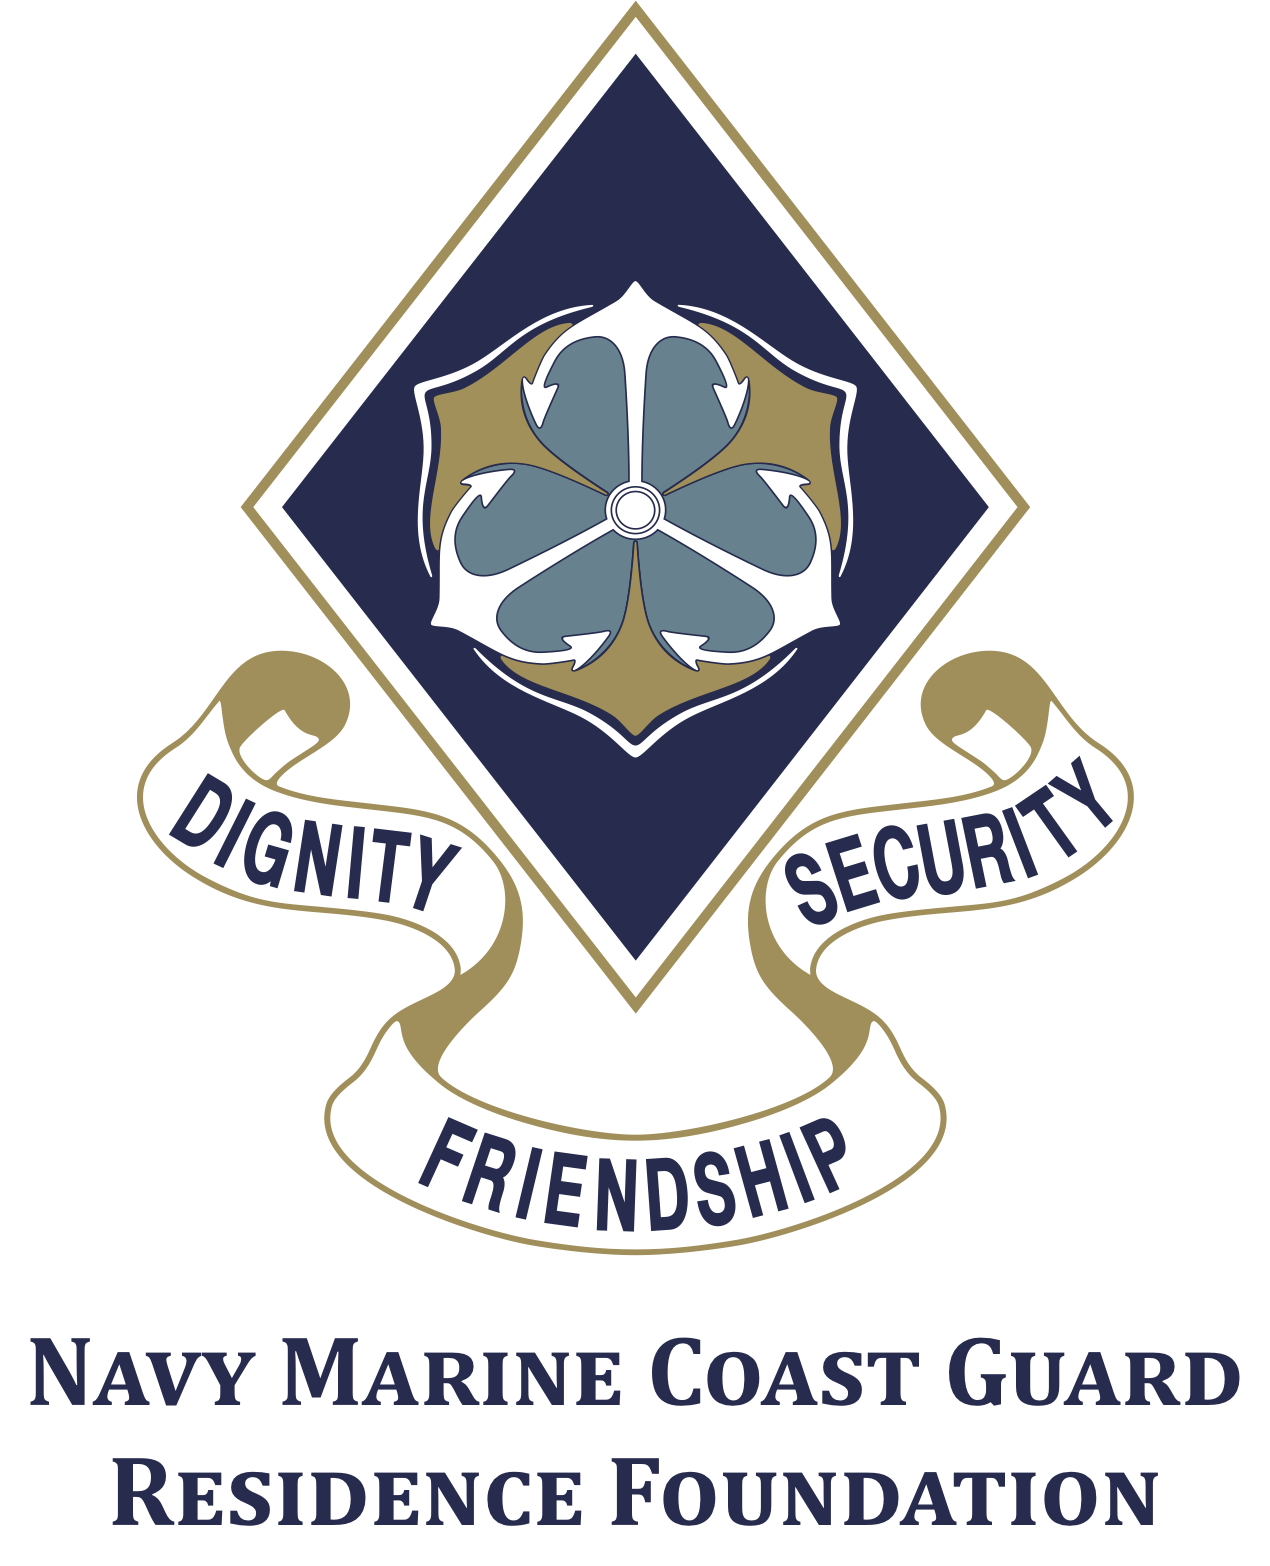 Navy Marine Coast Guard Residence Foundation Car Donations